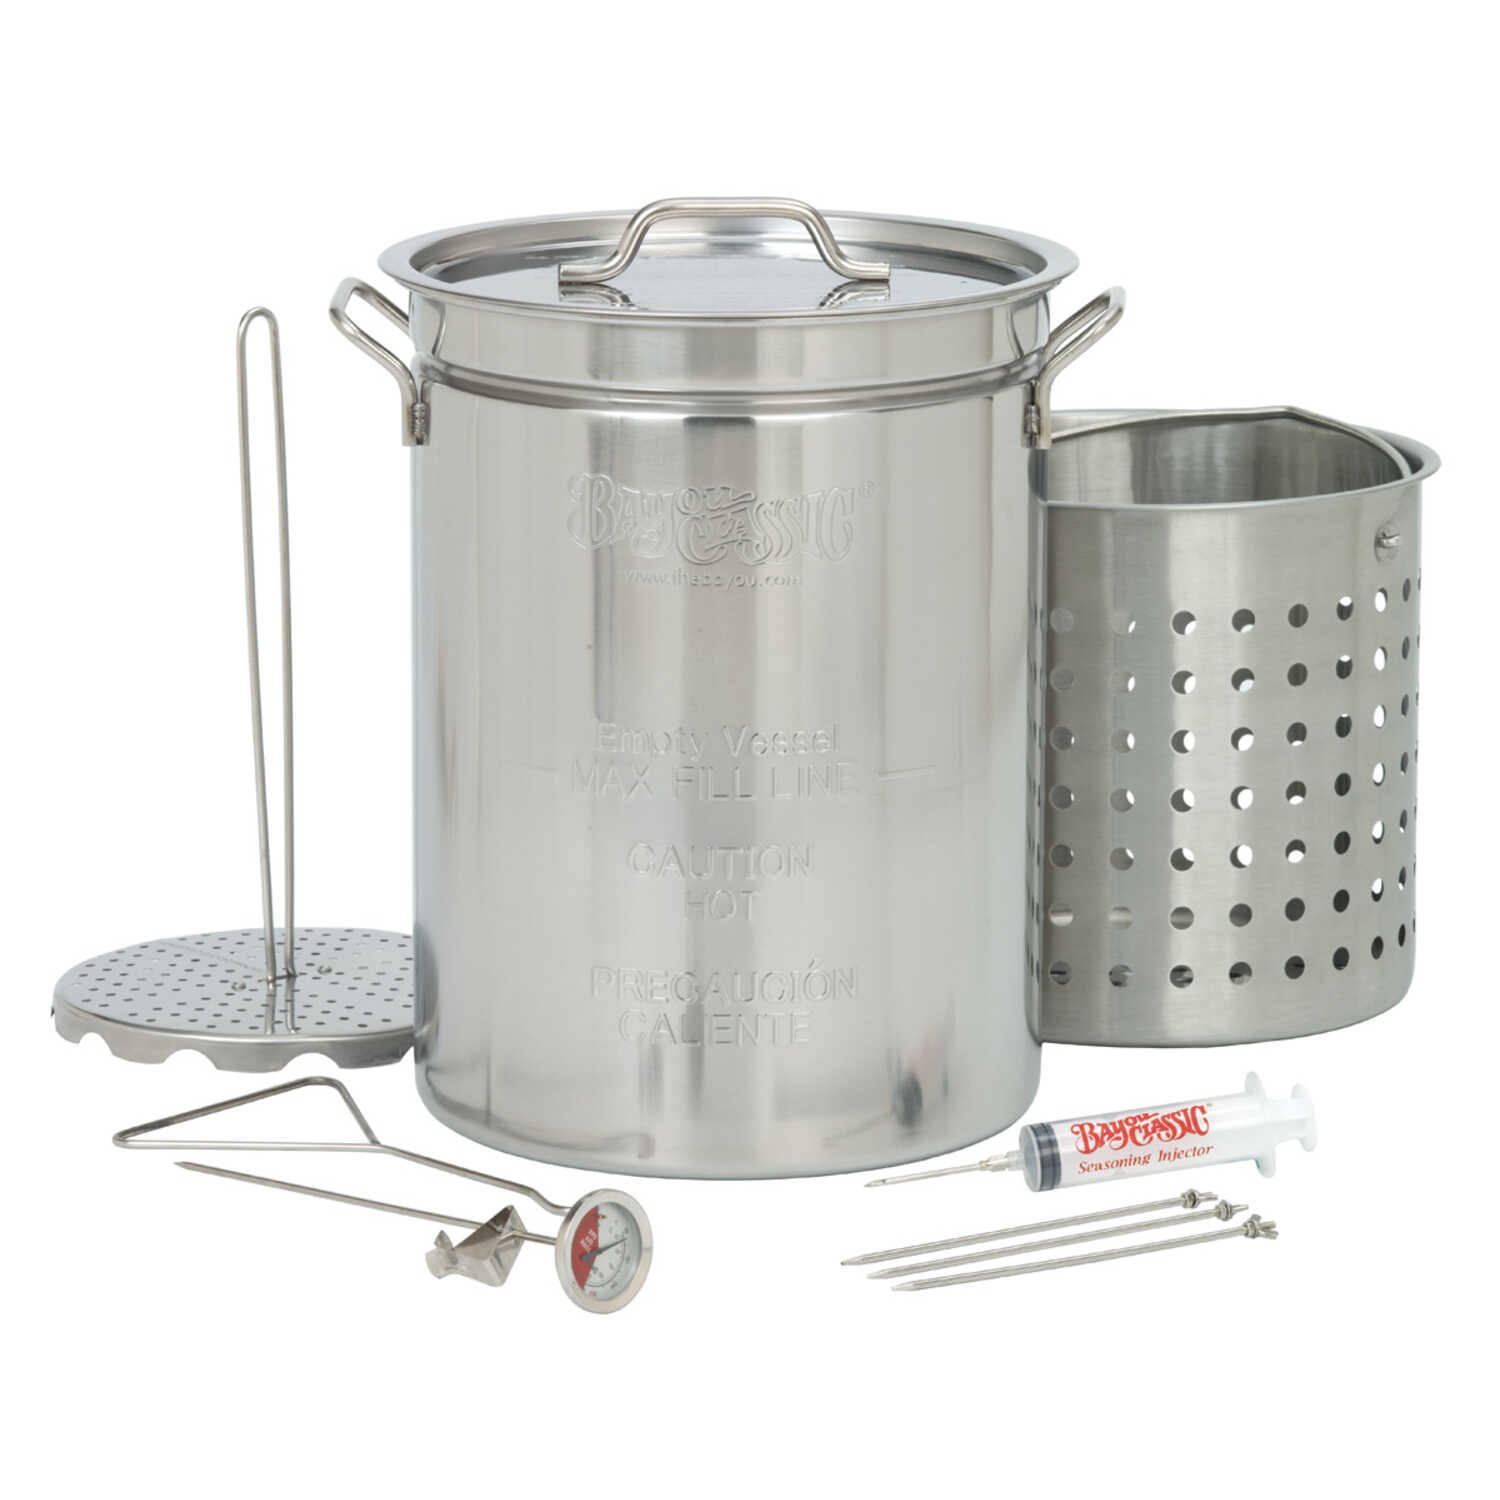 Bayou Classic  Stockpot  Stainless Steel  32 quarts qt.